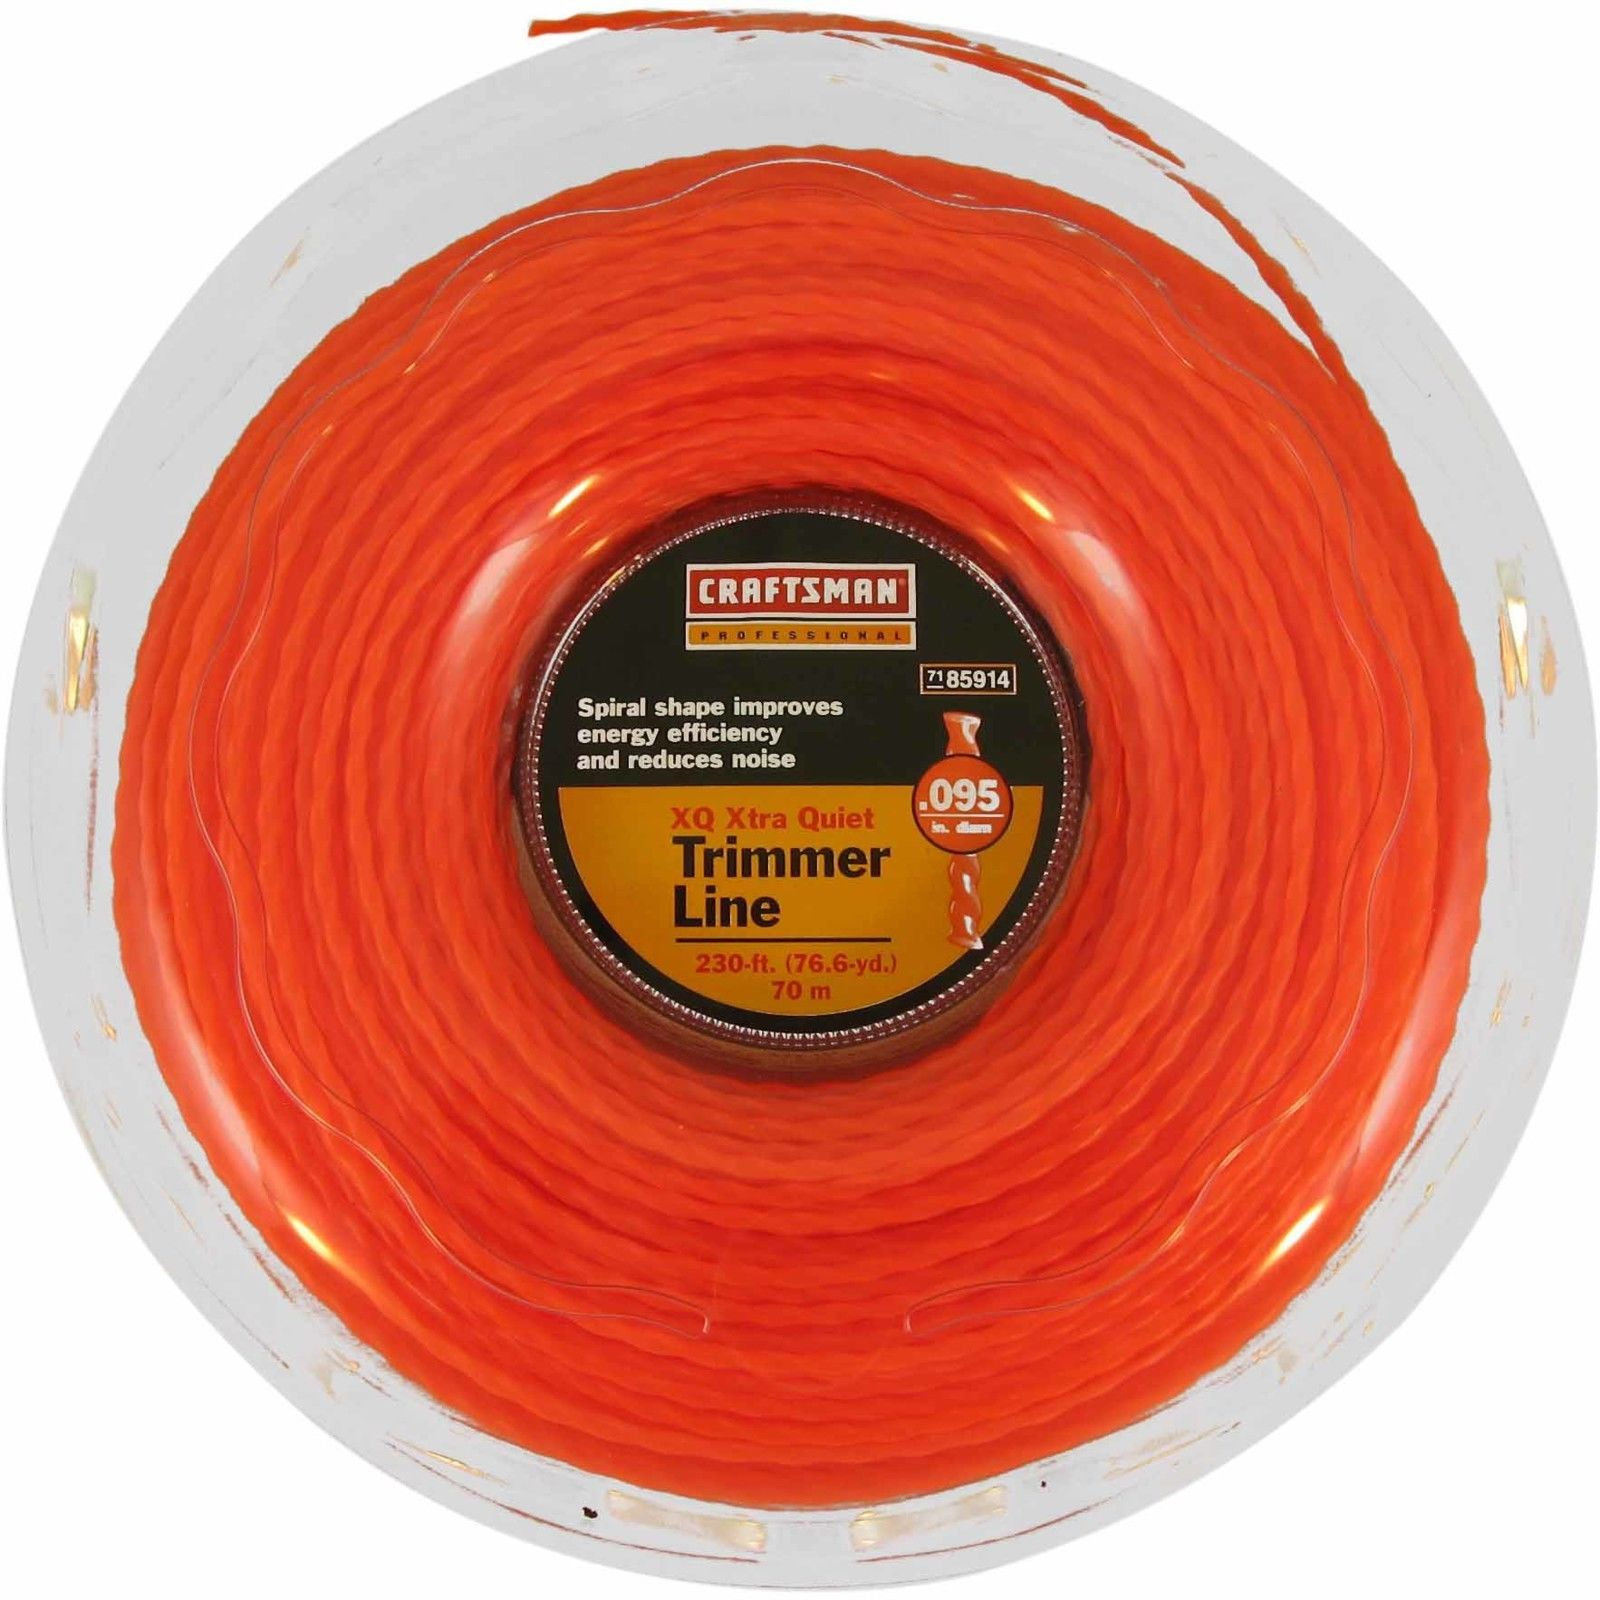 Craftsman String Trimmer Line Replacement Professional XQ Spiral Design 230 ft. Spool Lawn Garden Tool Accessory 986095D0.8-6